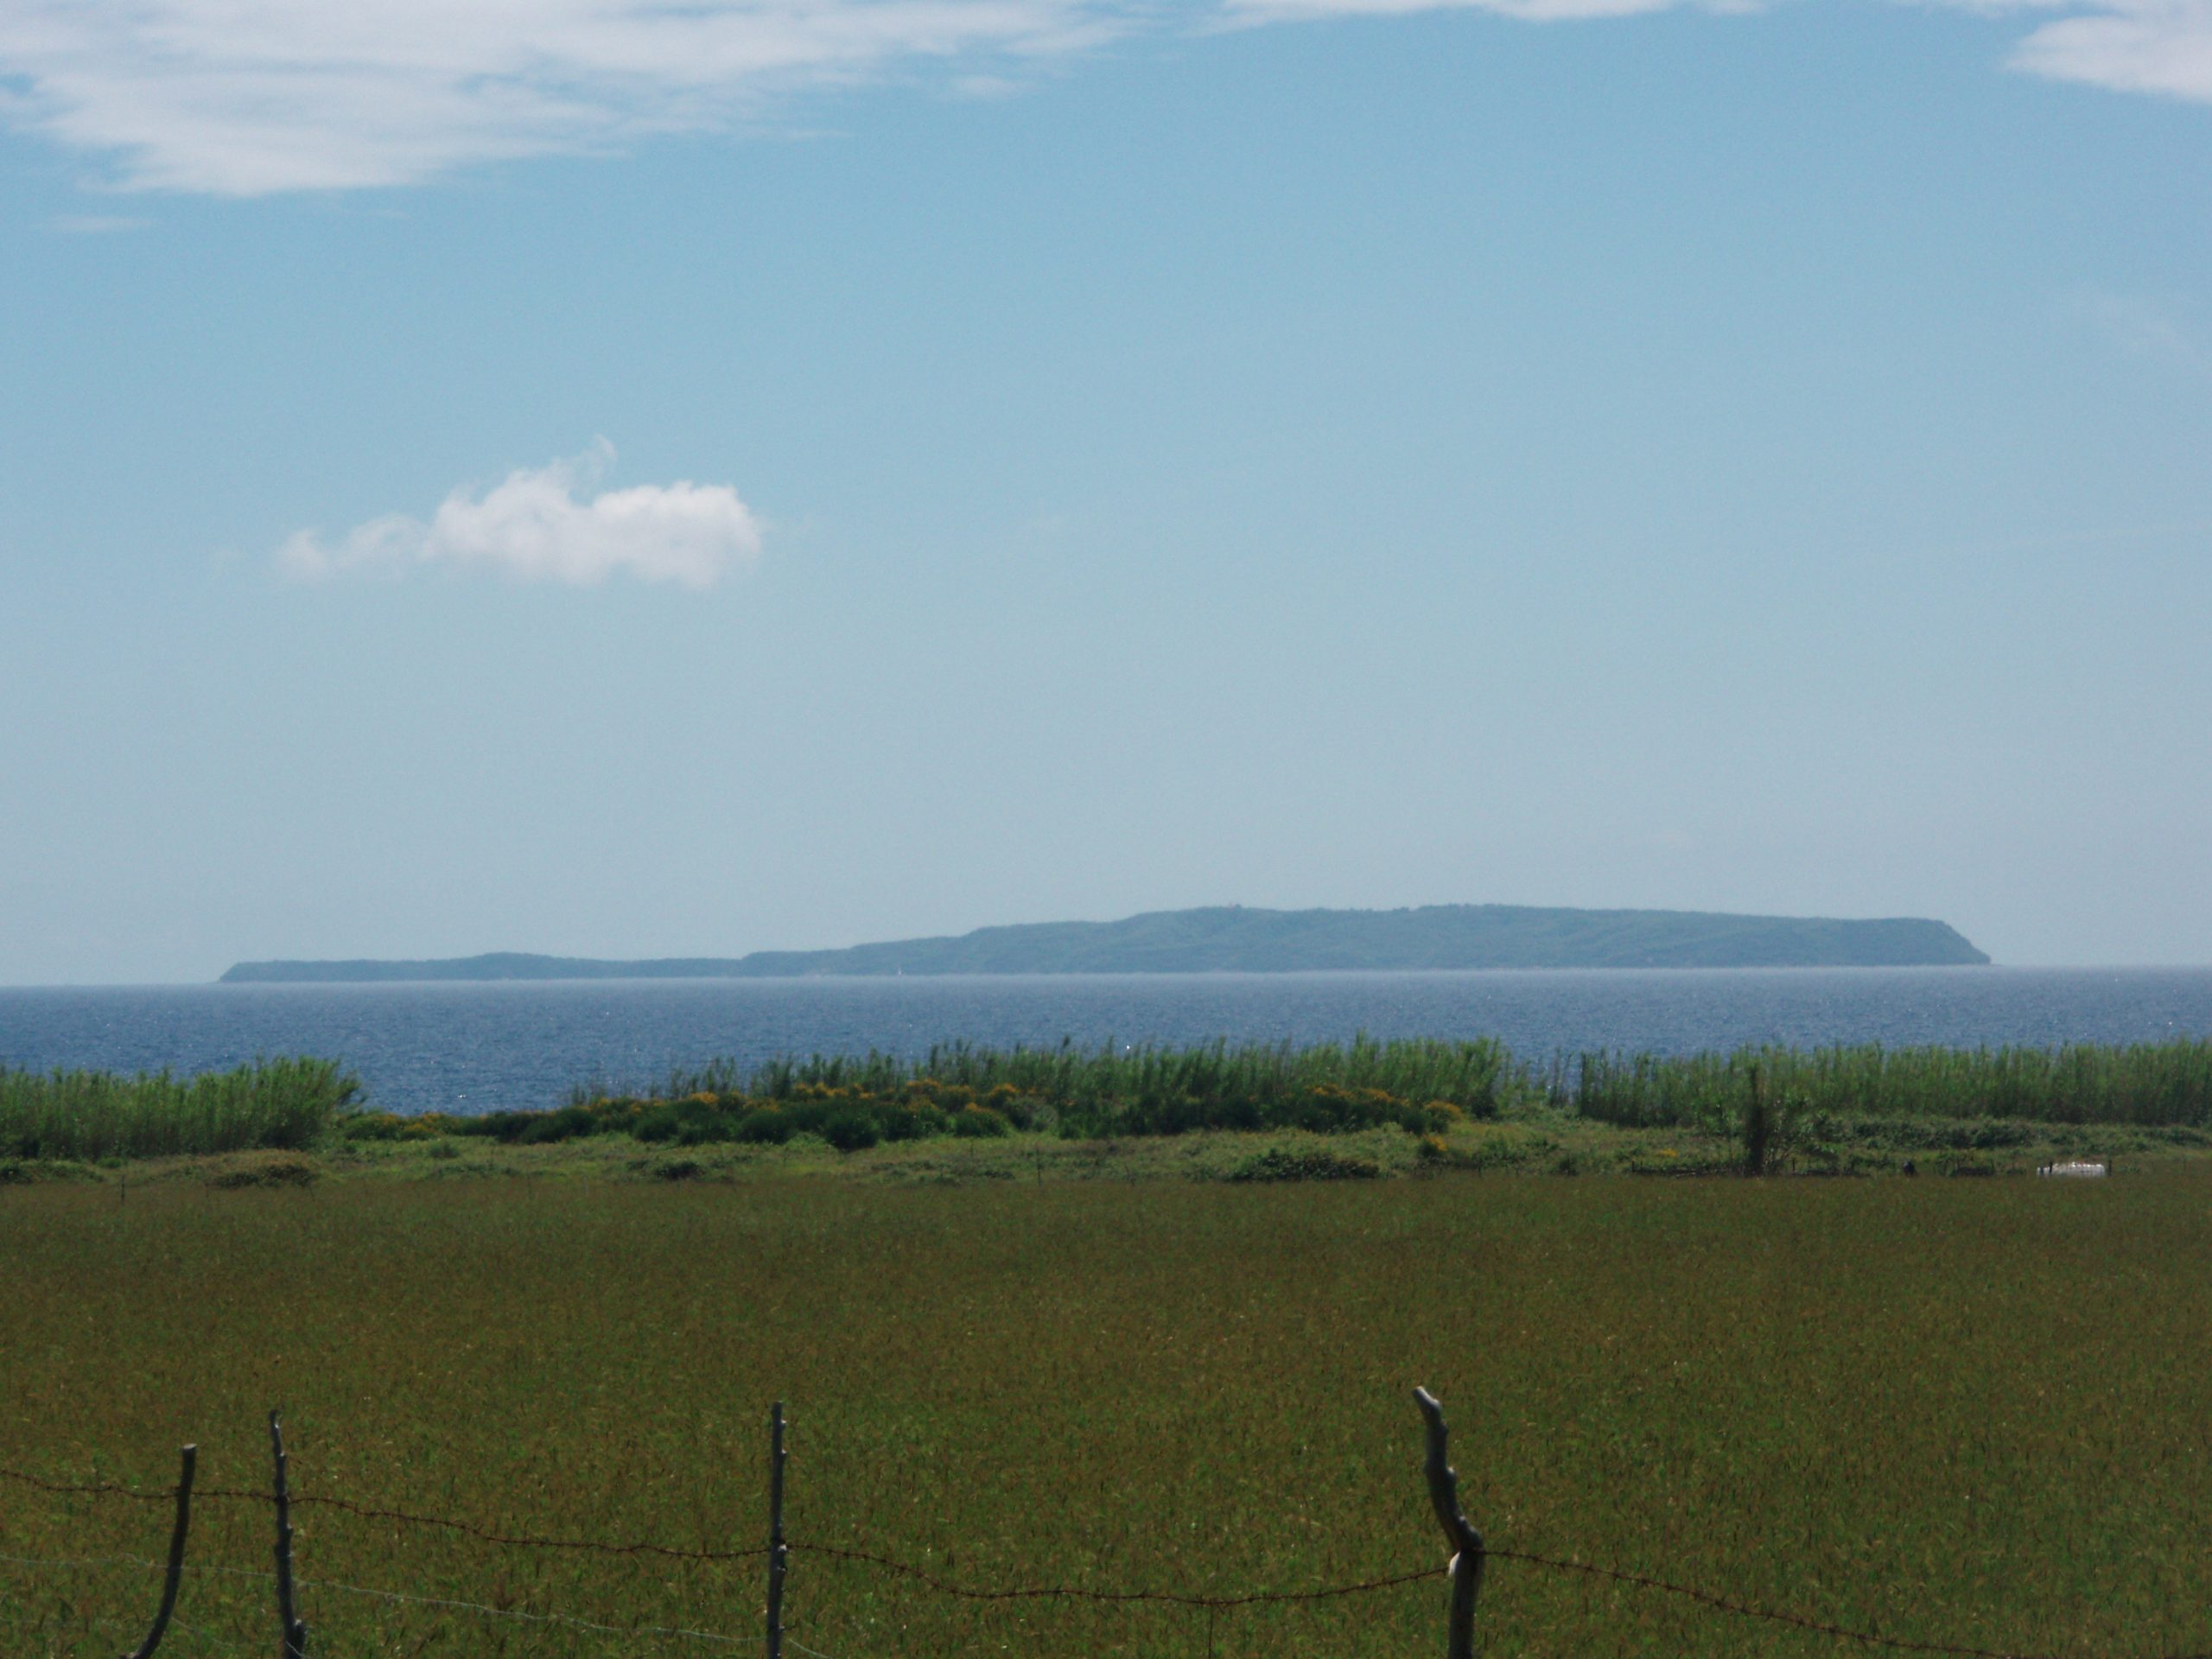 Outlines of Susak as seen from Unije. The tall grass has replaced tiled fields – a consequence of deagrarization that has affected small Croatian islands.